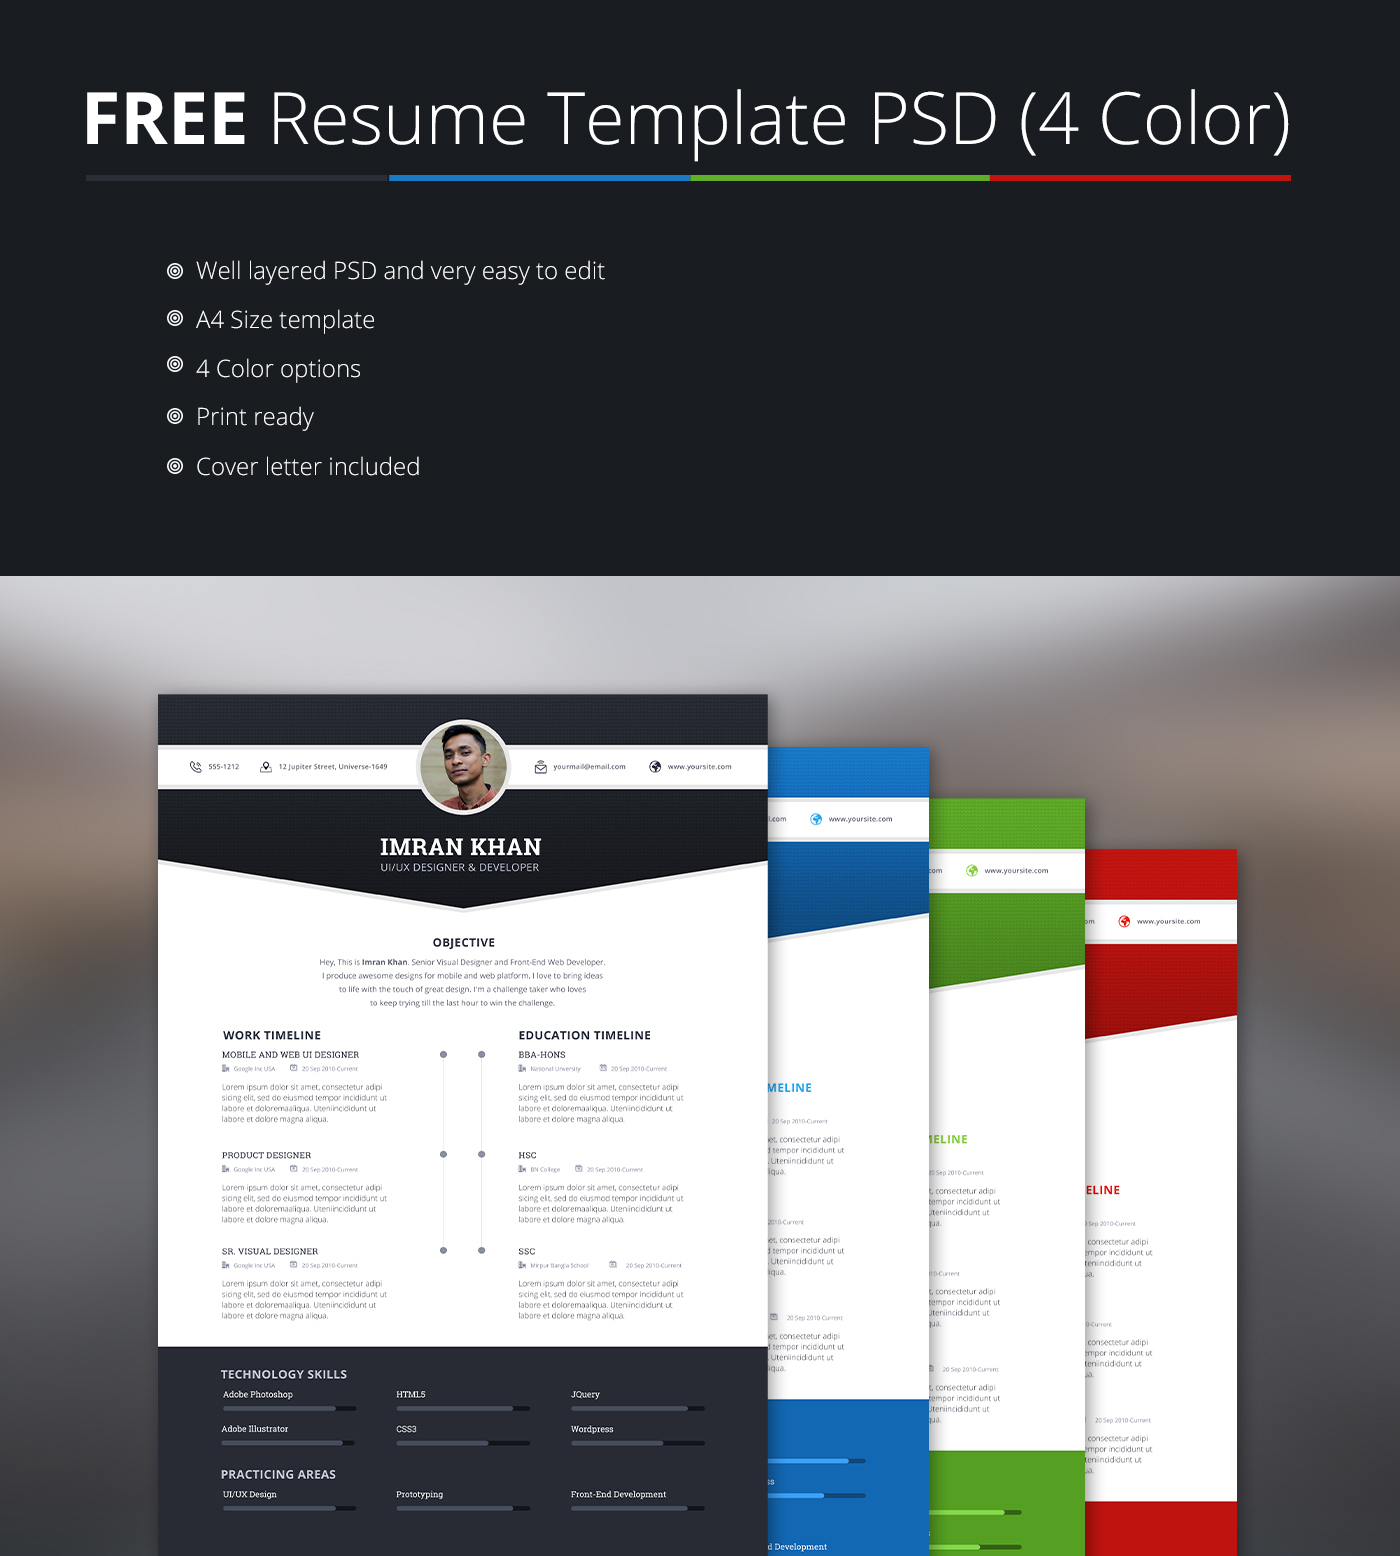 free resume template psd 4 colors on behance - Creative Resume Templates Free Download